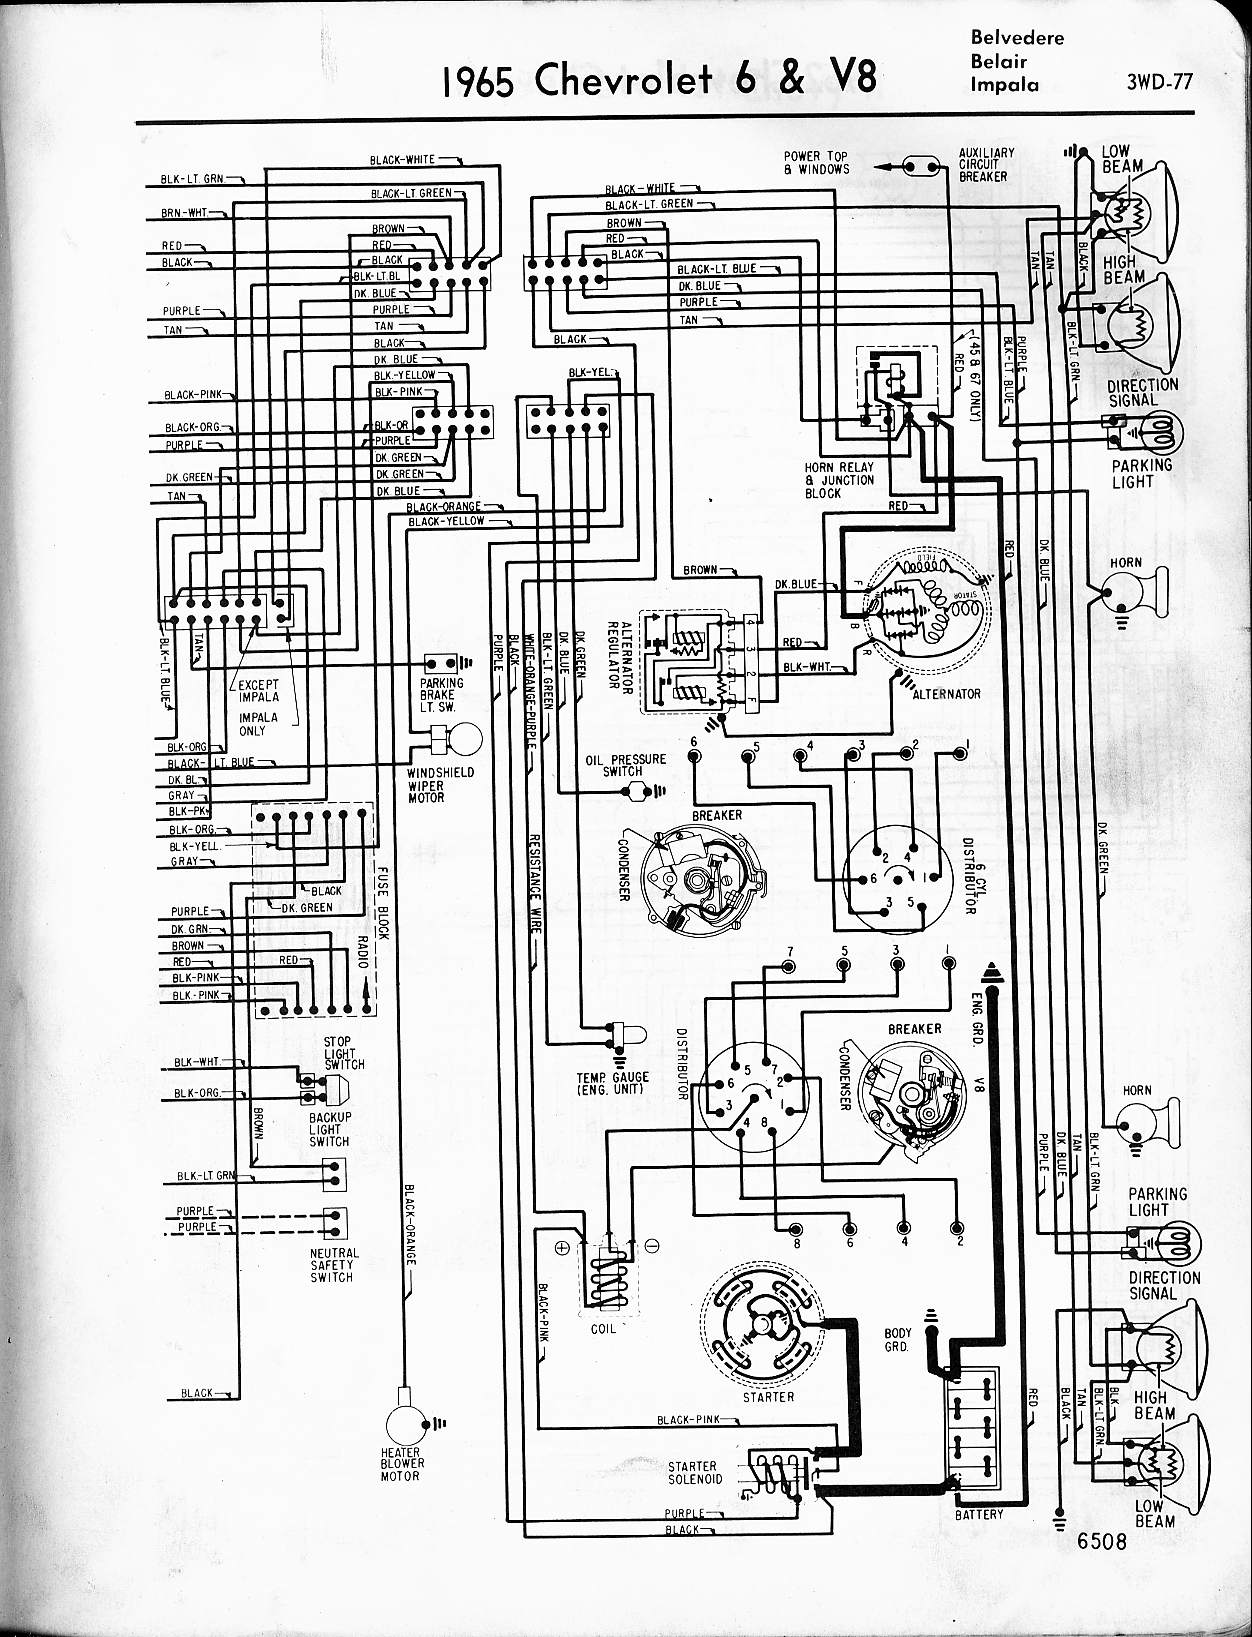 MWireChev65_3WD 077 57 65 chevy wiring diagrams 65 chevy truck wiring diagram at alyssarenee.co